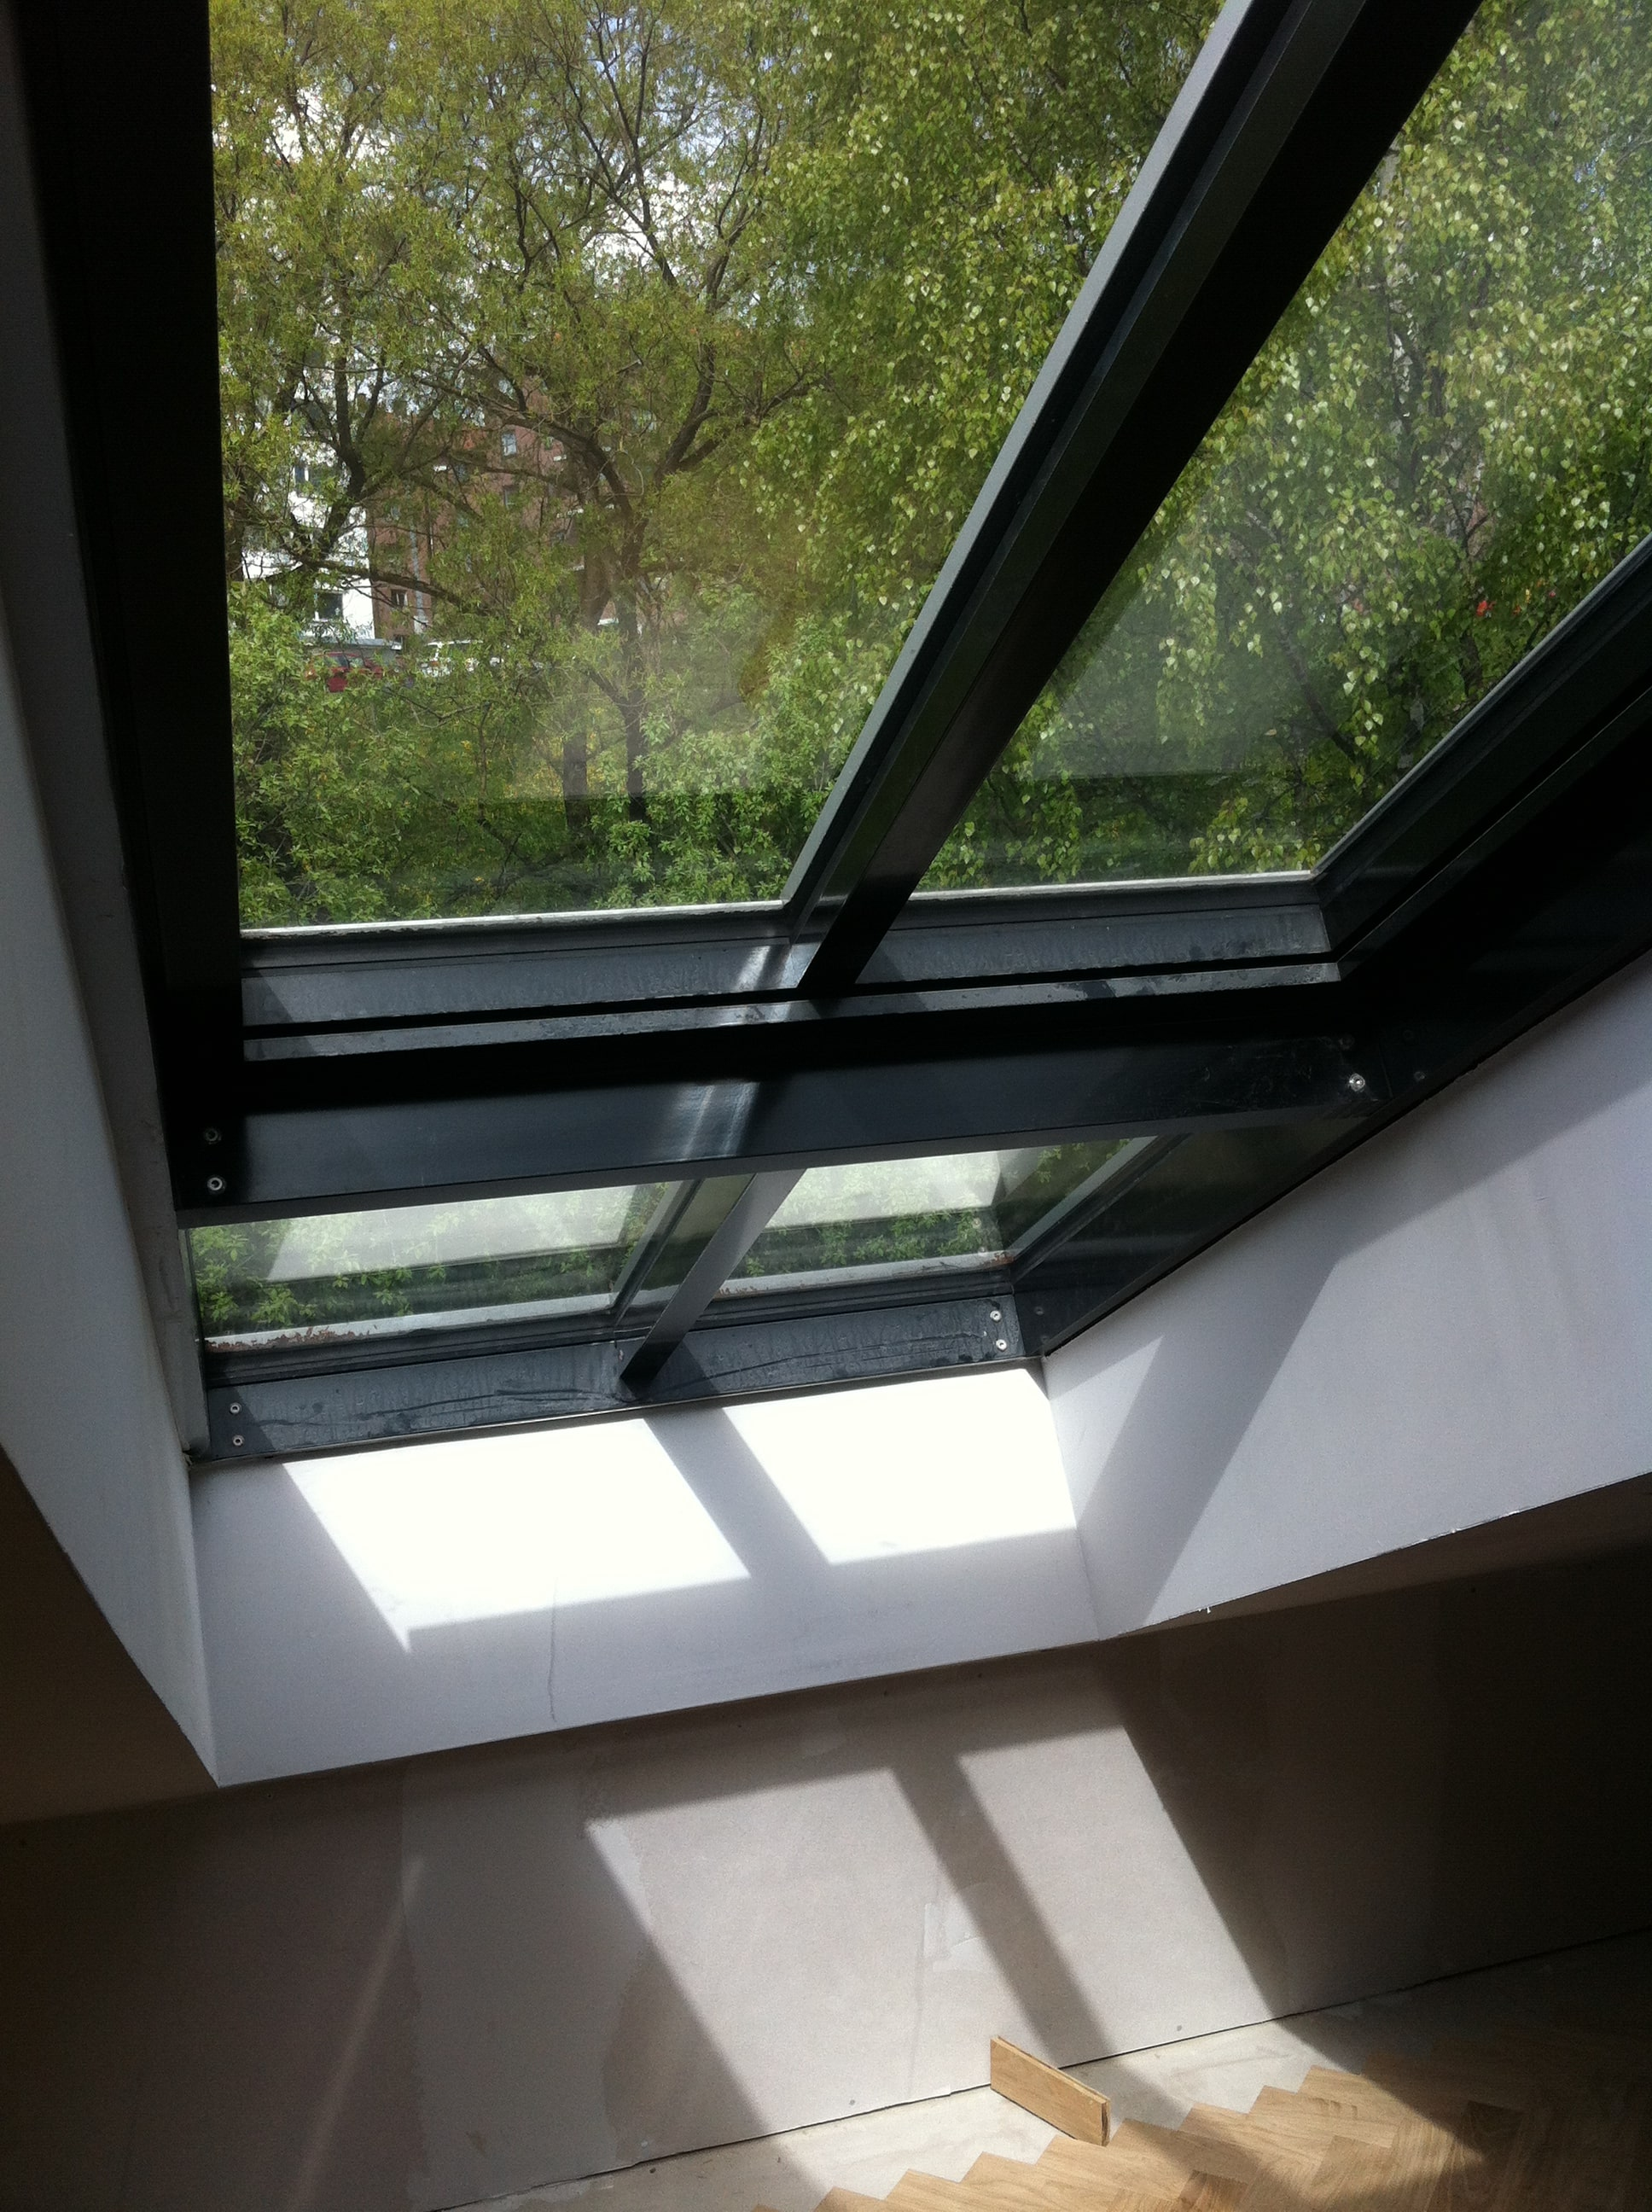 midos rooflights house